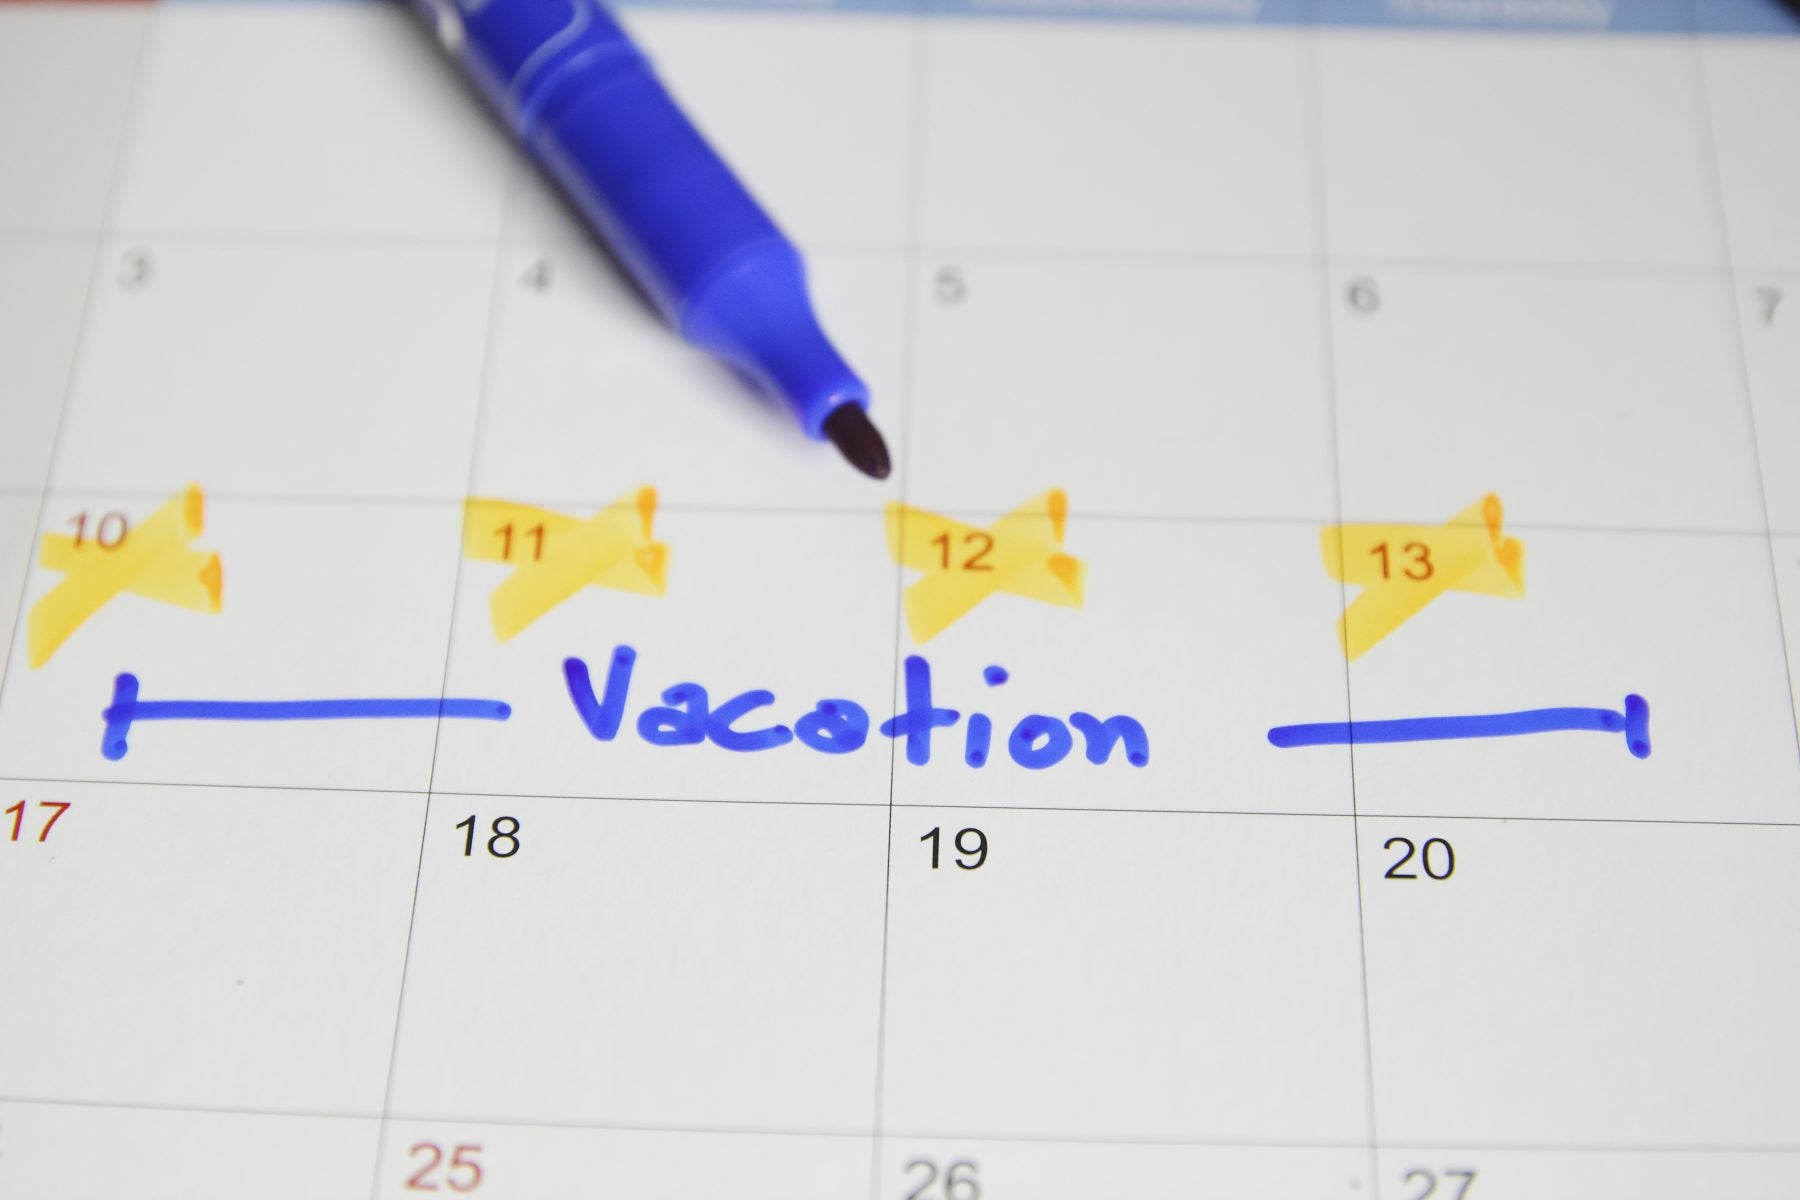 Calendar showing upcoming vacation days